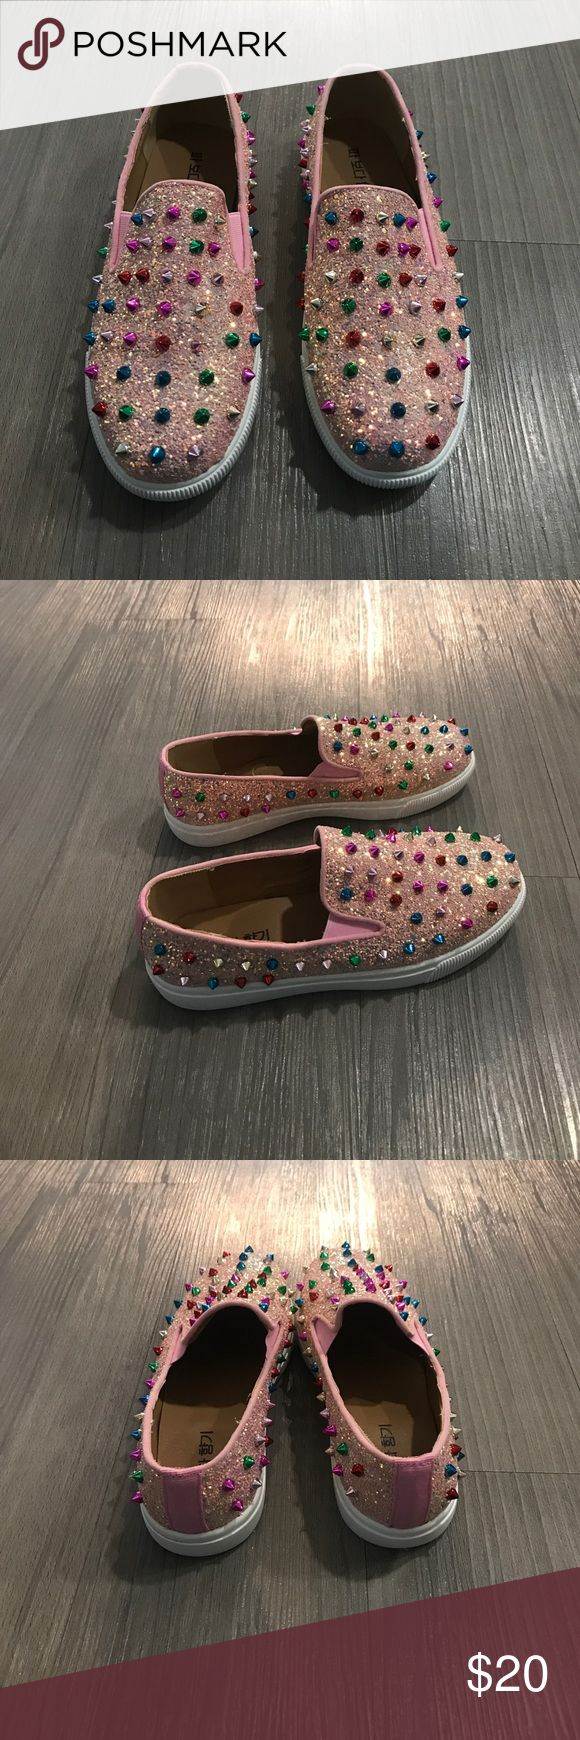 Kids DESIGNER STYLE SLIP ON STUDDED SNEAKER SHOES Size 4 worn a few times has different colored studs and pink glitter have other cute stuff on different listings and can bundle Shoes